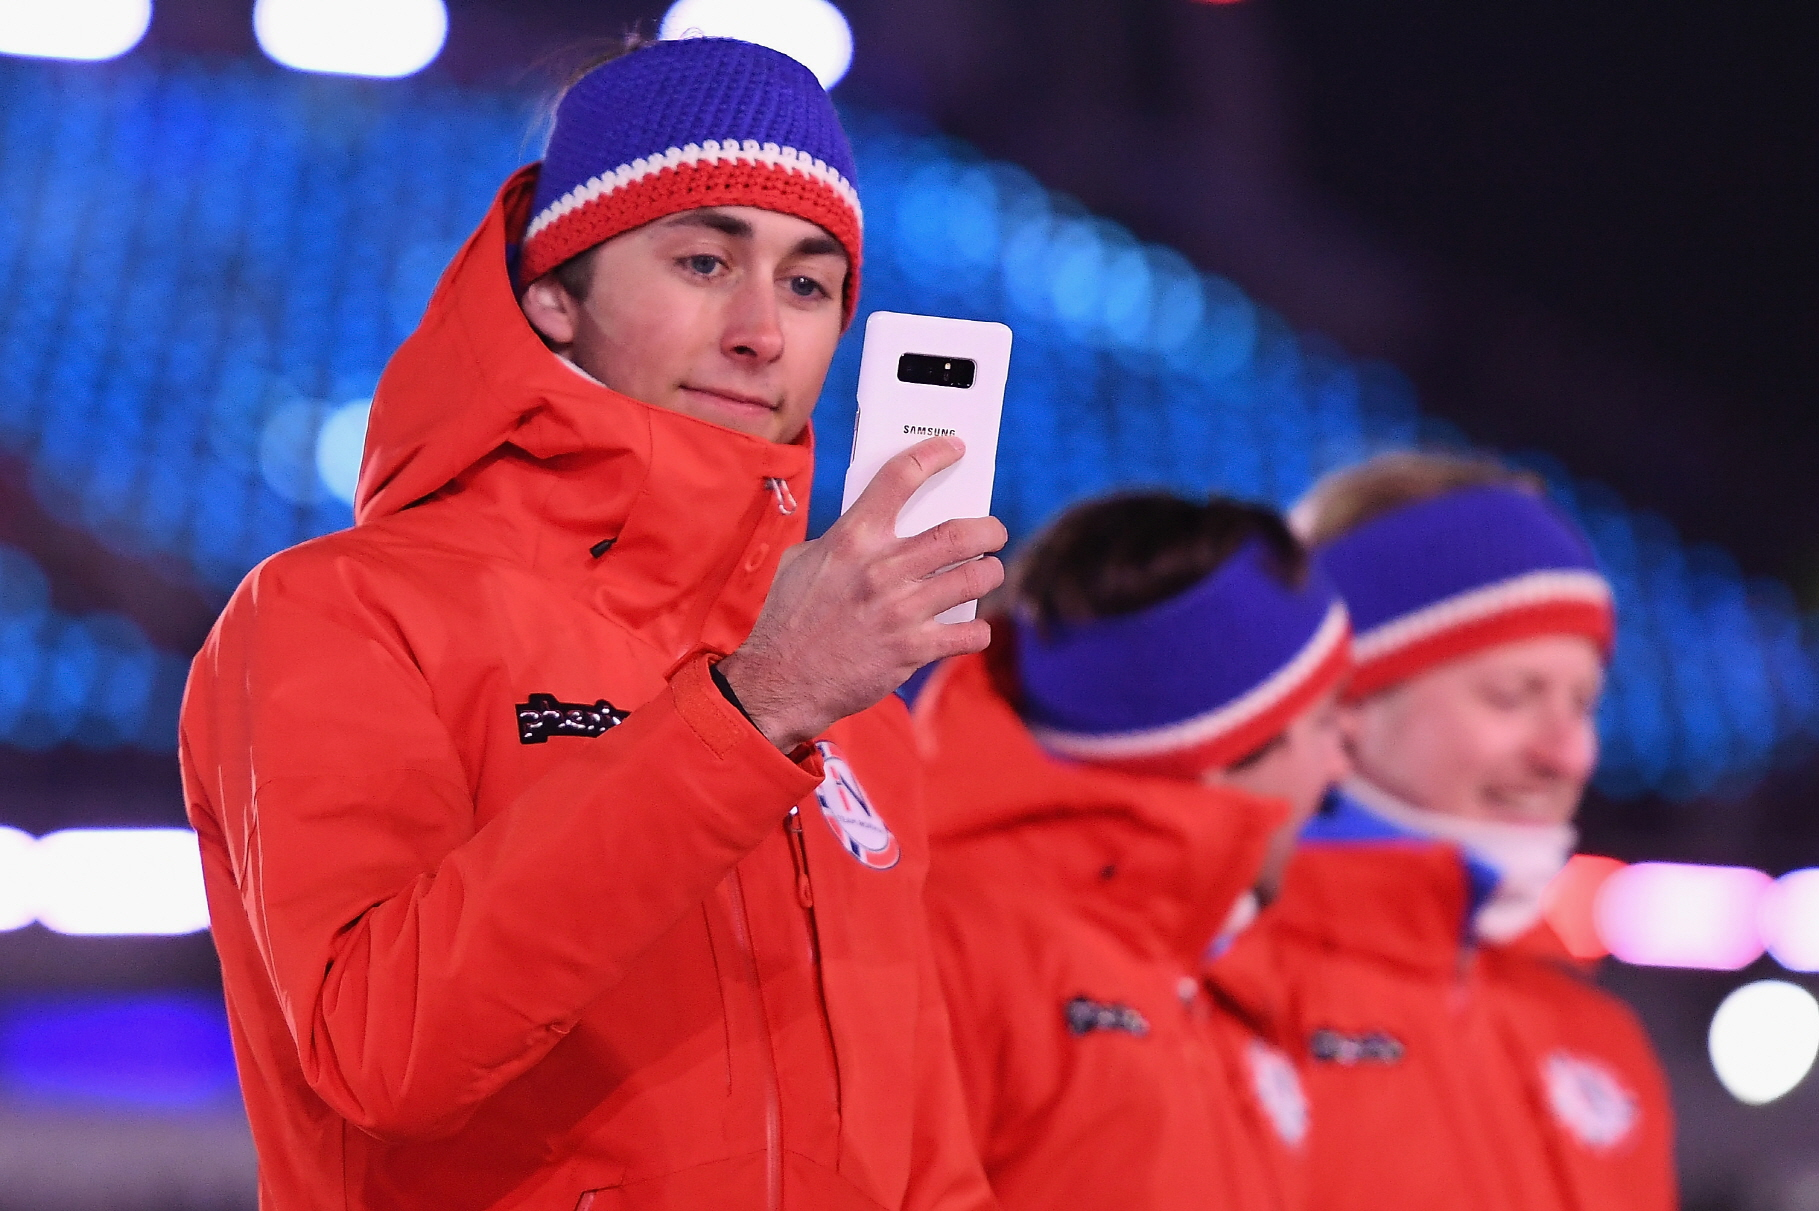 PYEONGCHANG-GUN, SOUTH KOREA - FEBRUARY 09:  A member of Team Netherlands takes a selfie with a Samsung phone during the Opening Ceremony of the PyeongChang 2018 Winter Olympic Games at PyeongChang Olympic Stadium on February 9, 2018 in Pyeongchang-gun, South Korea.  (Photo by Quinn Rooney/Getty Images)